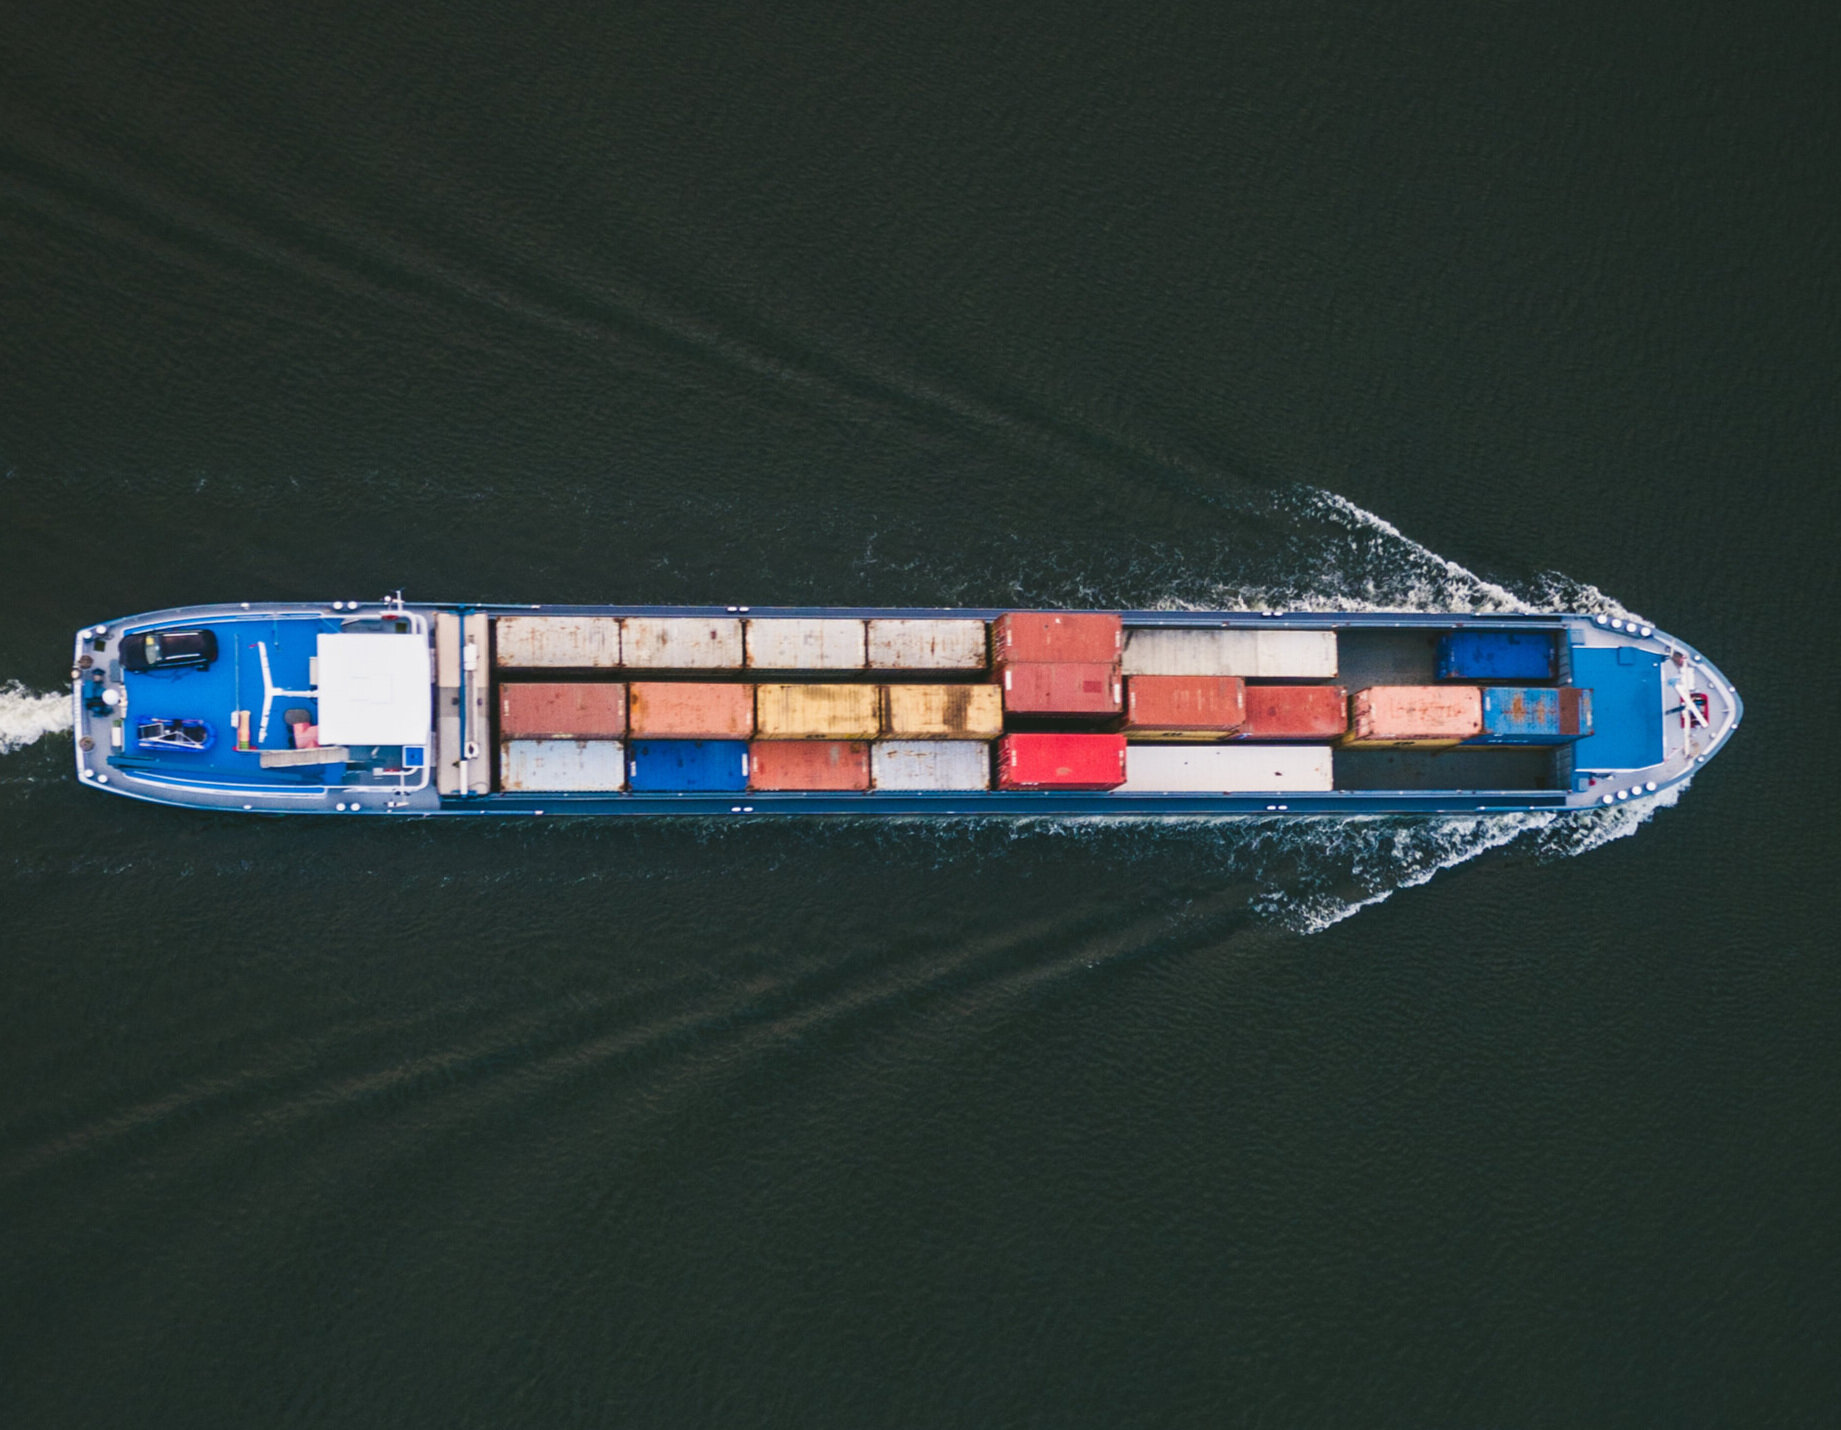 Ocean - Our International experts can help arrange for transportation of freight from your dock to U.S port, overseas shipment on a variety of ocean carriers and final delivery by our network of International partners or help bring International freight to your U.S. location.